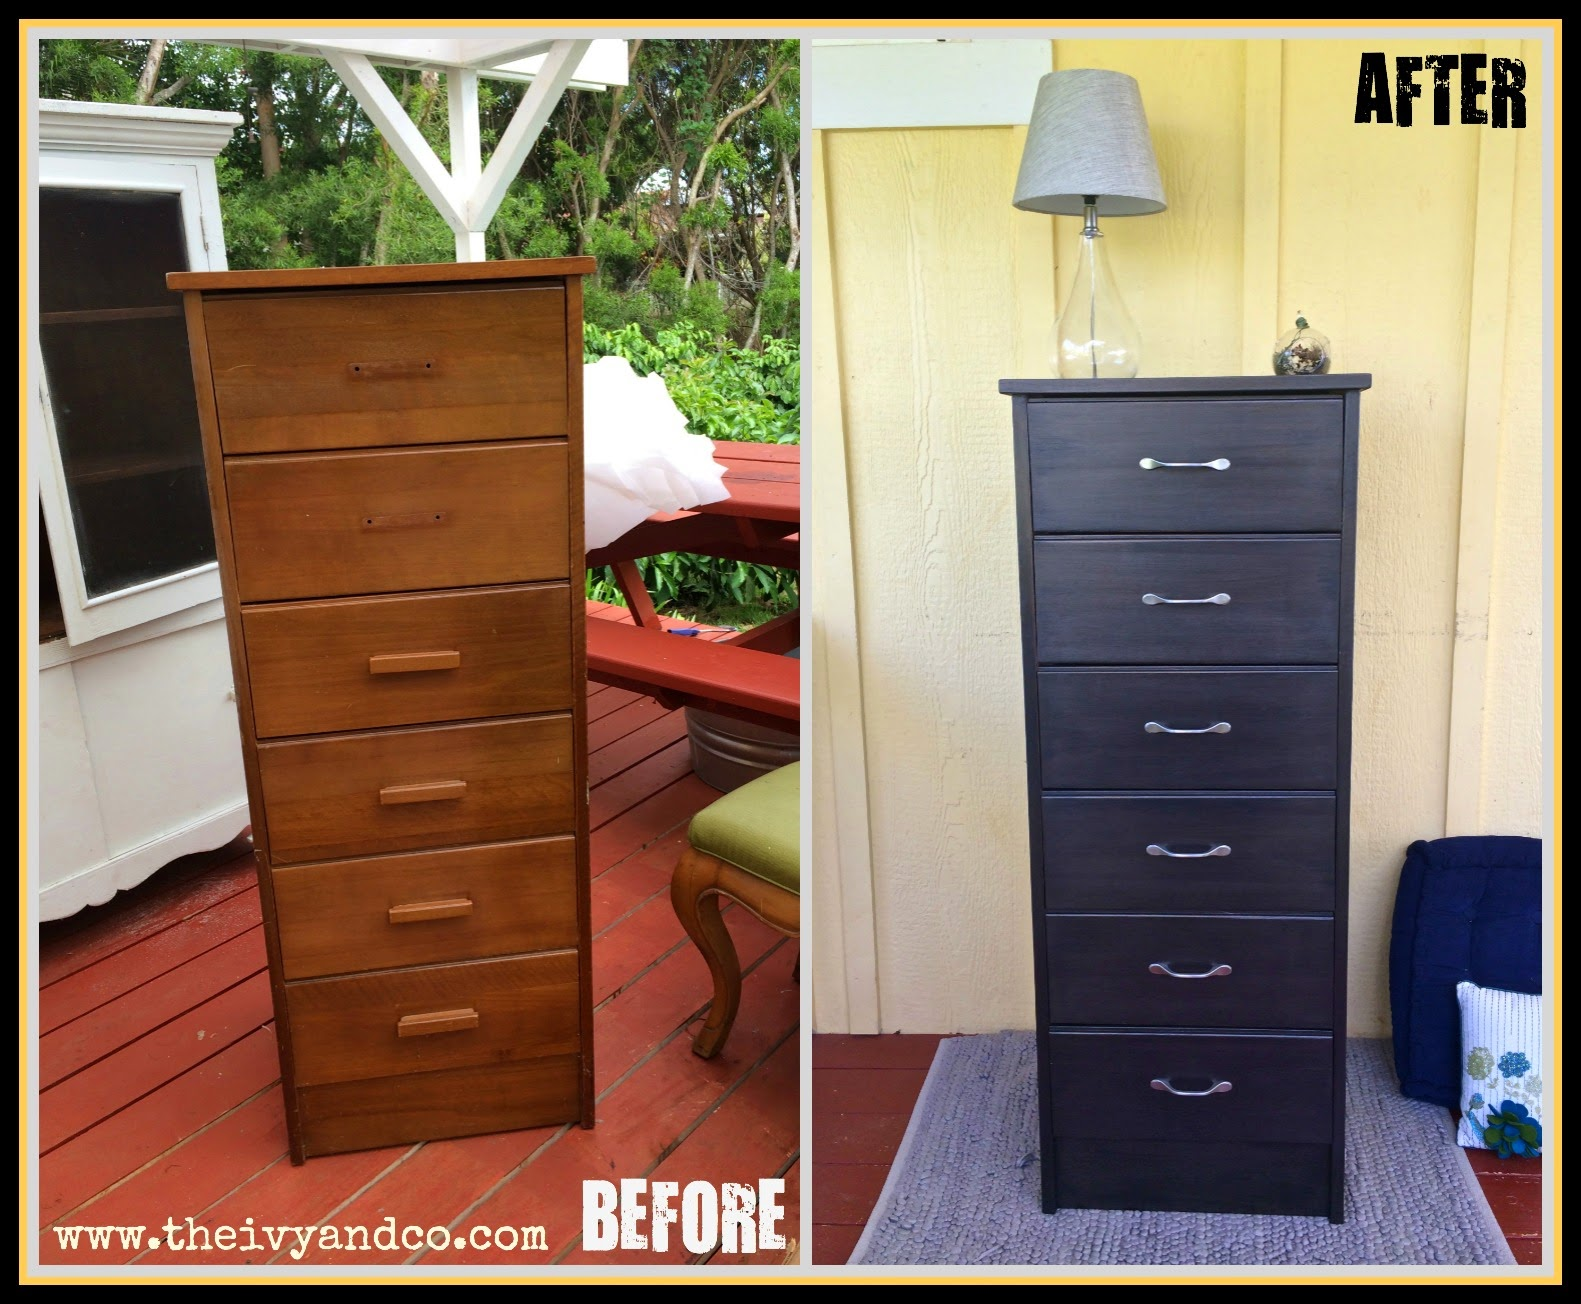 Ordinaire Before And After Tall Black Dresser Re Do Chalk Paint Metallic Paint Martha  Stewart